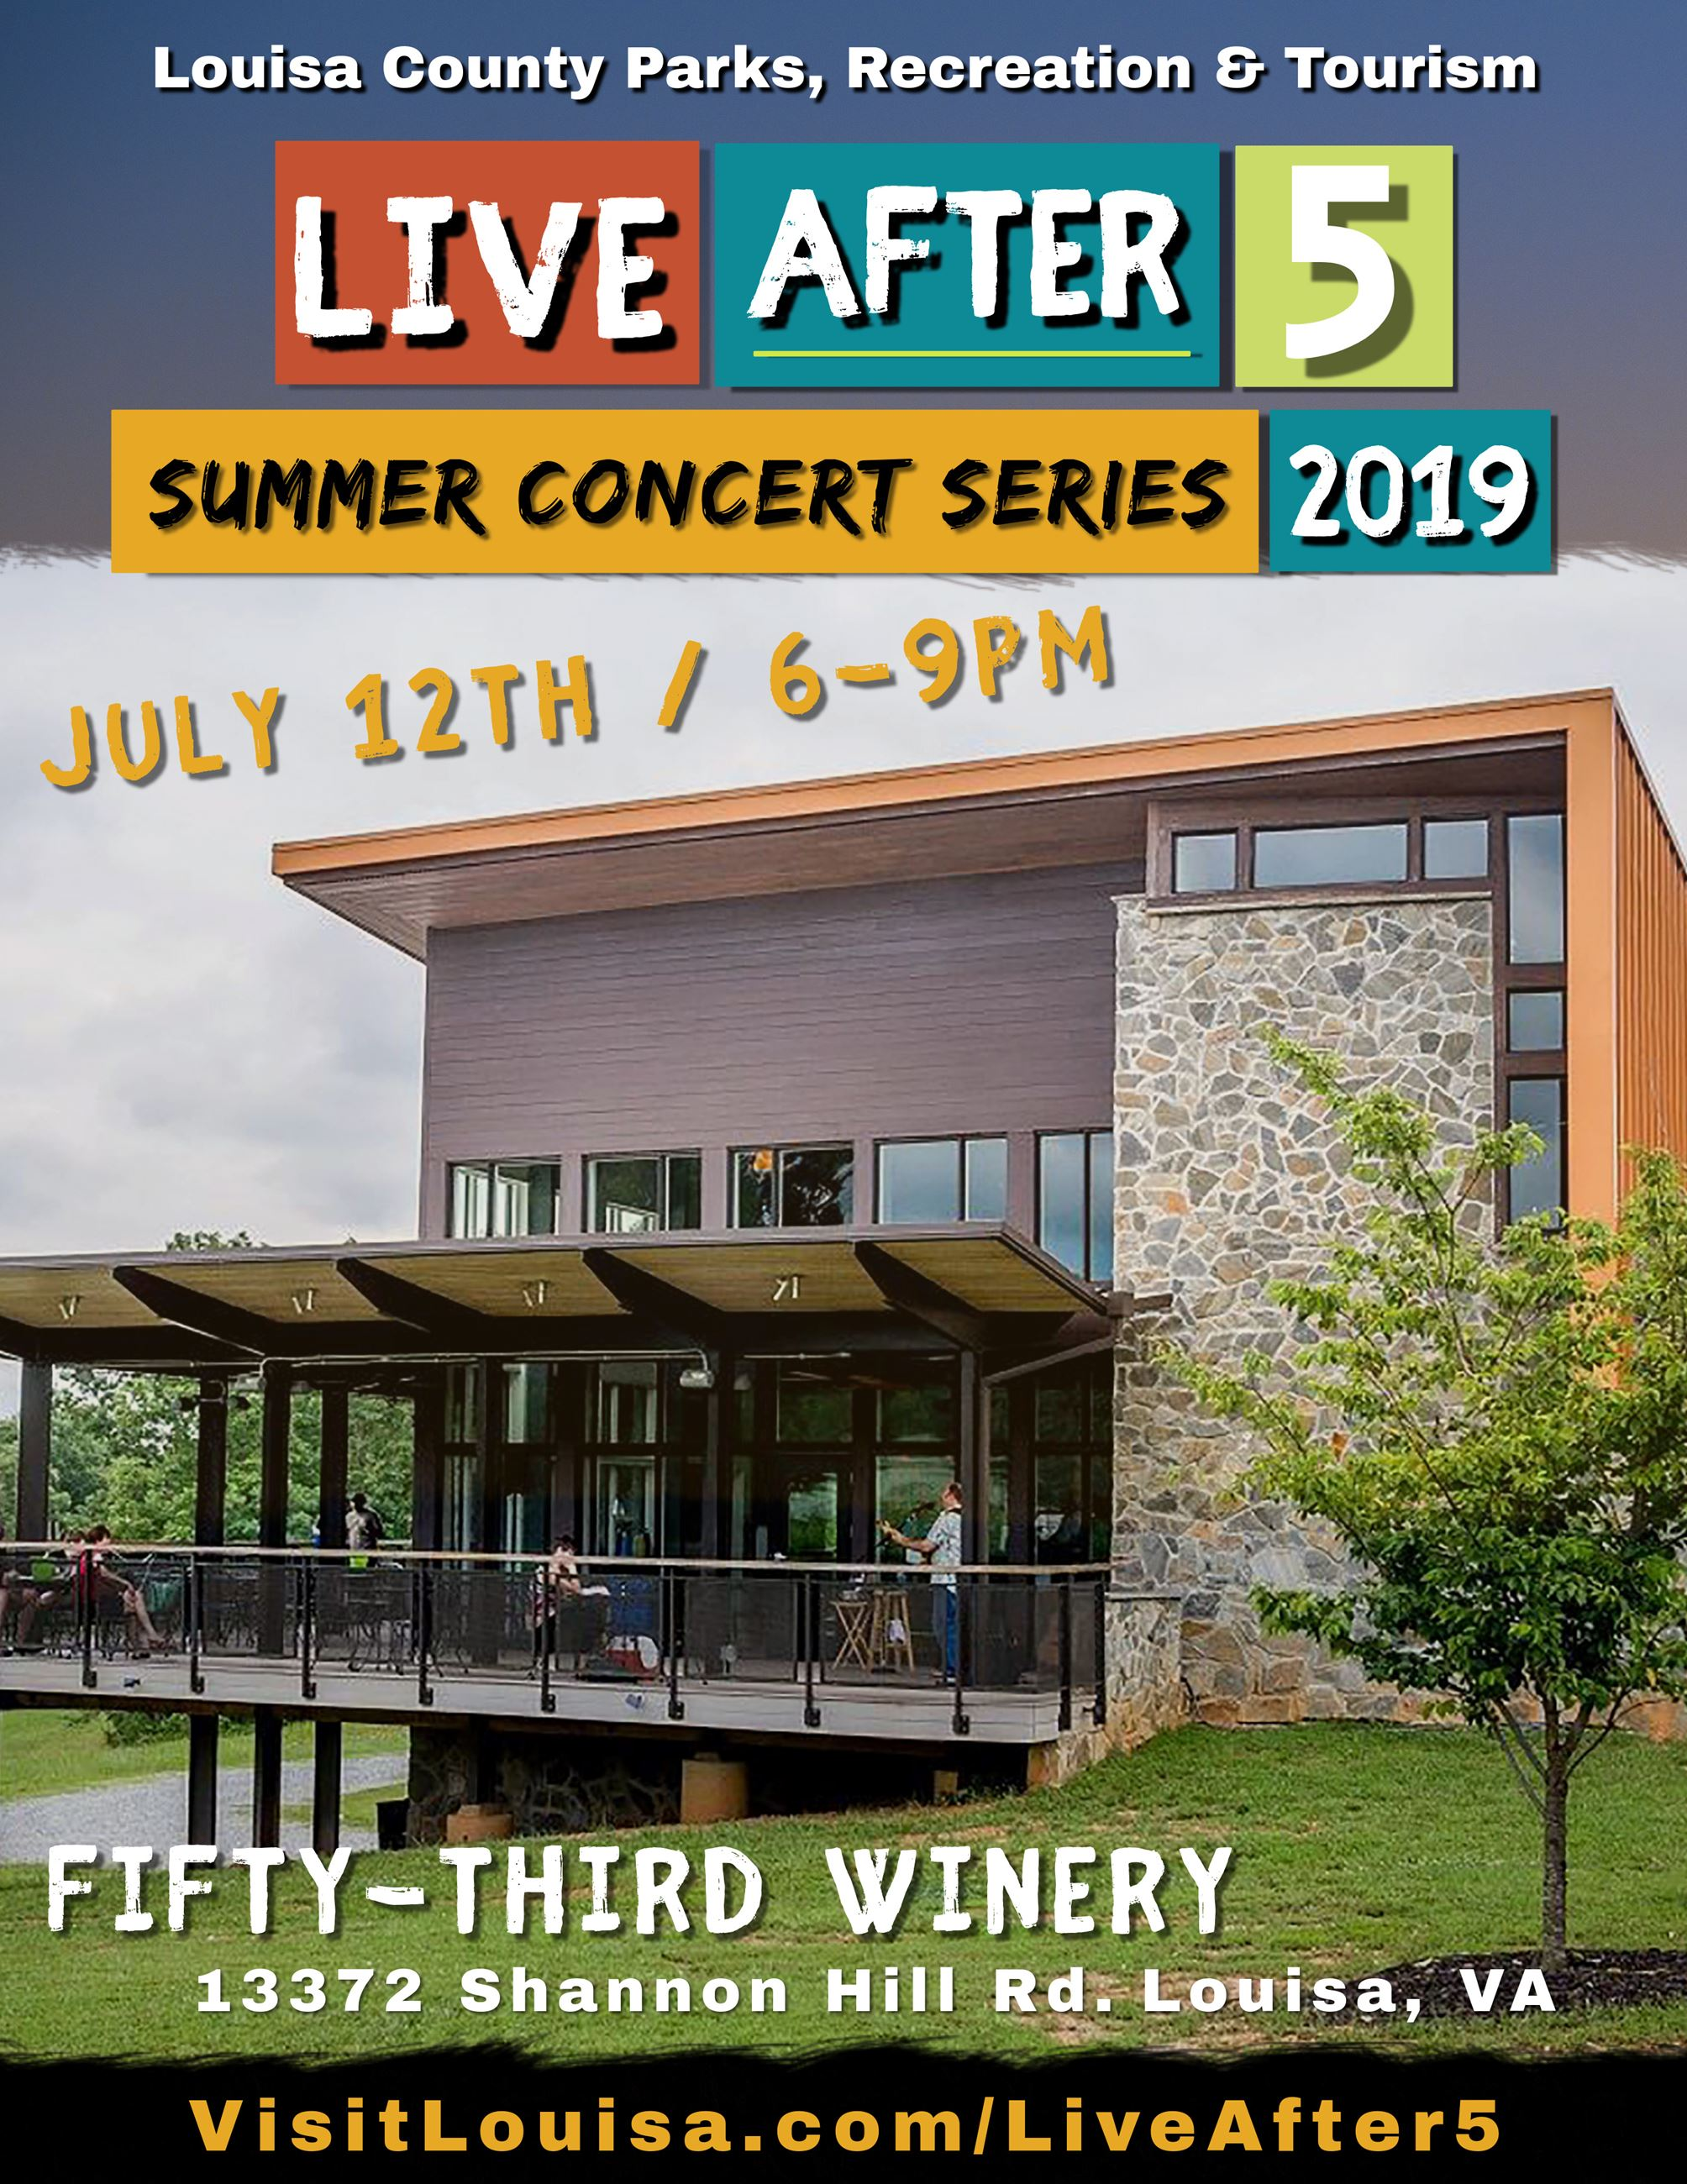 Flyer for Fifty-Third Winery - Live After 5